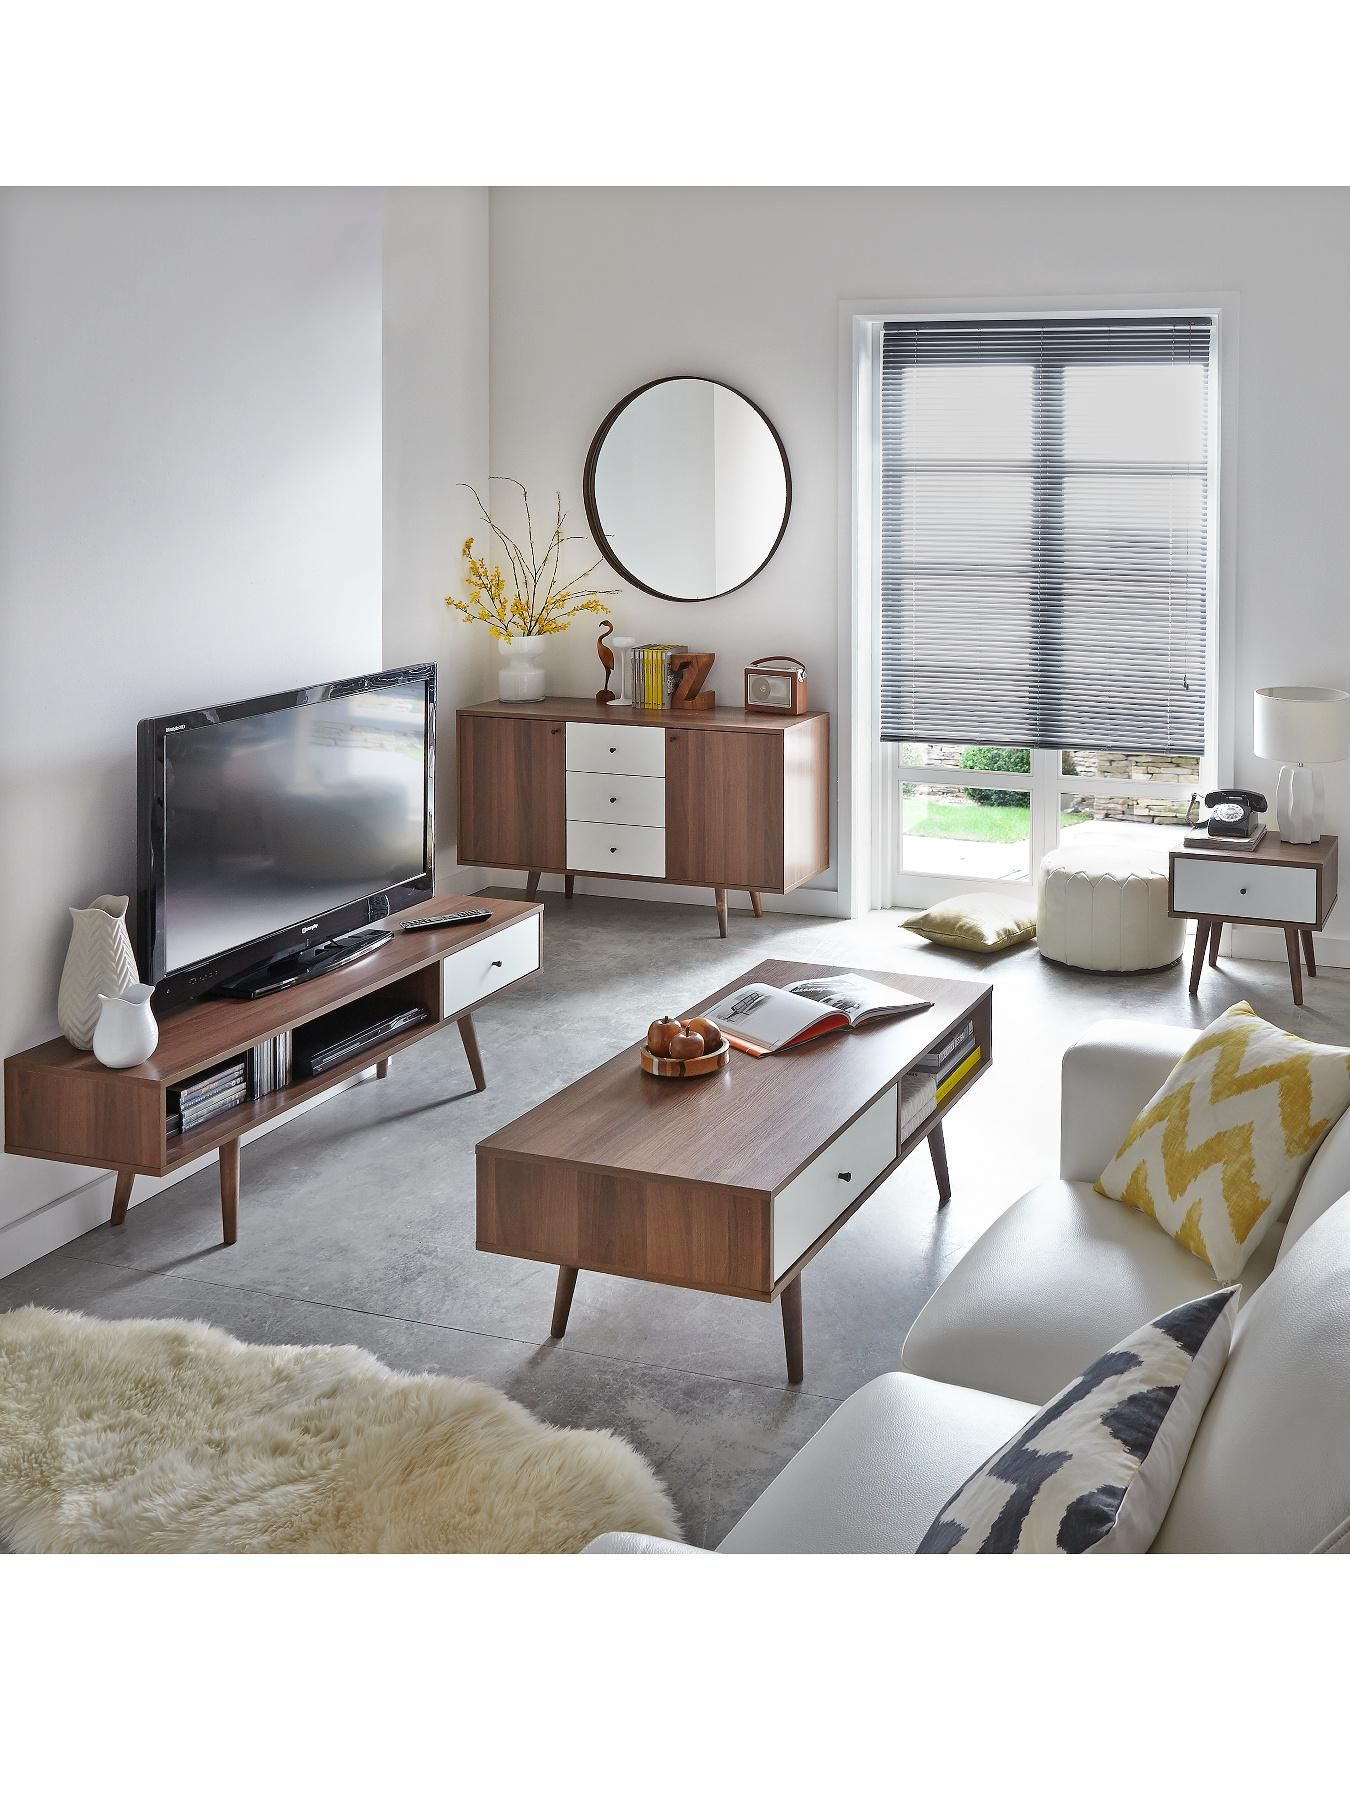 retro living room coffee table modern pop false ceiling designs for ideal home monty tv unit fits up to 65 inch in 2019 1 drawer walnut effect and white 60 the fabulous fifties have made a return forefront of fashions this